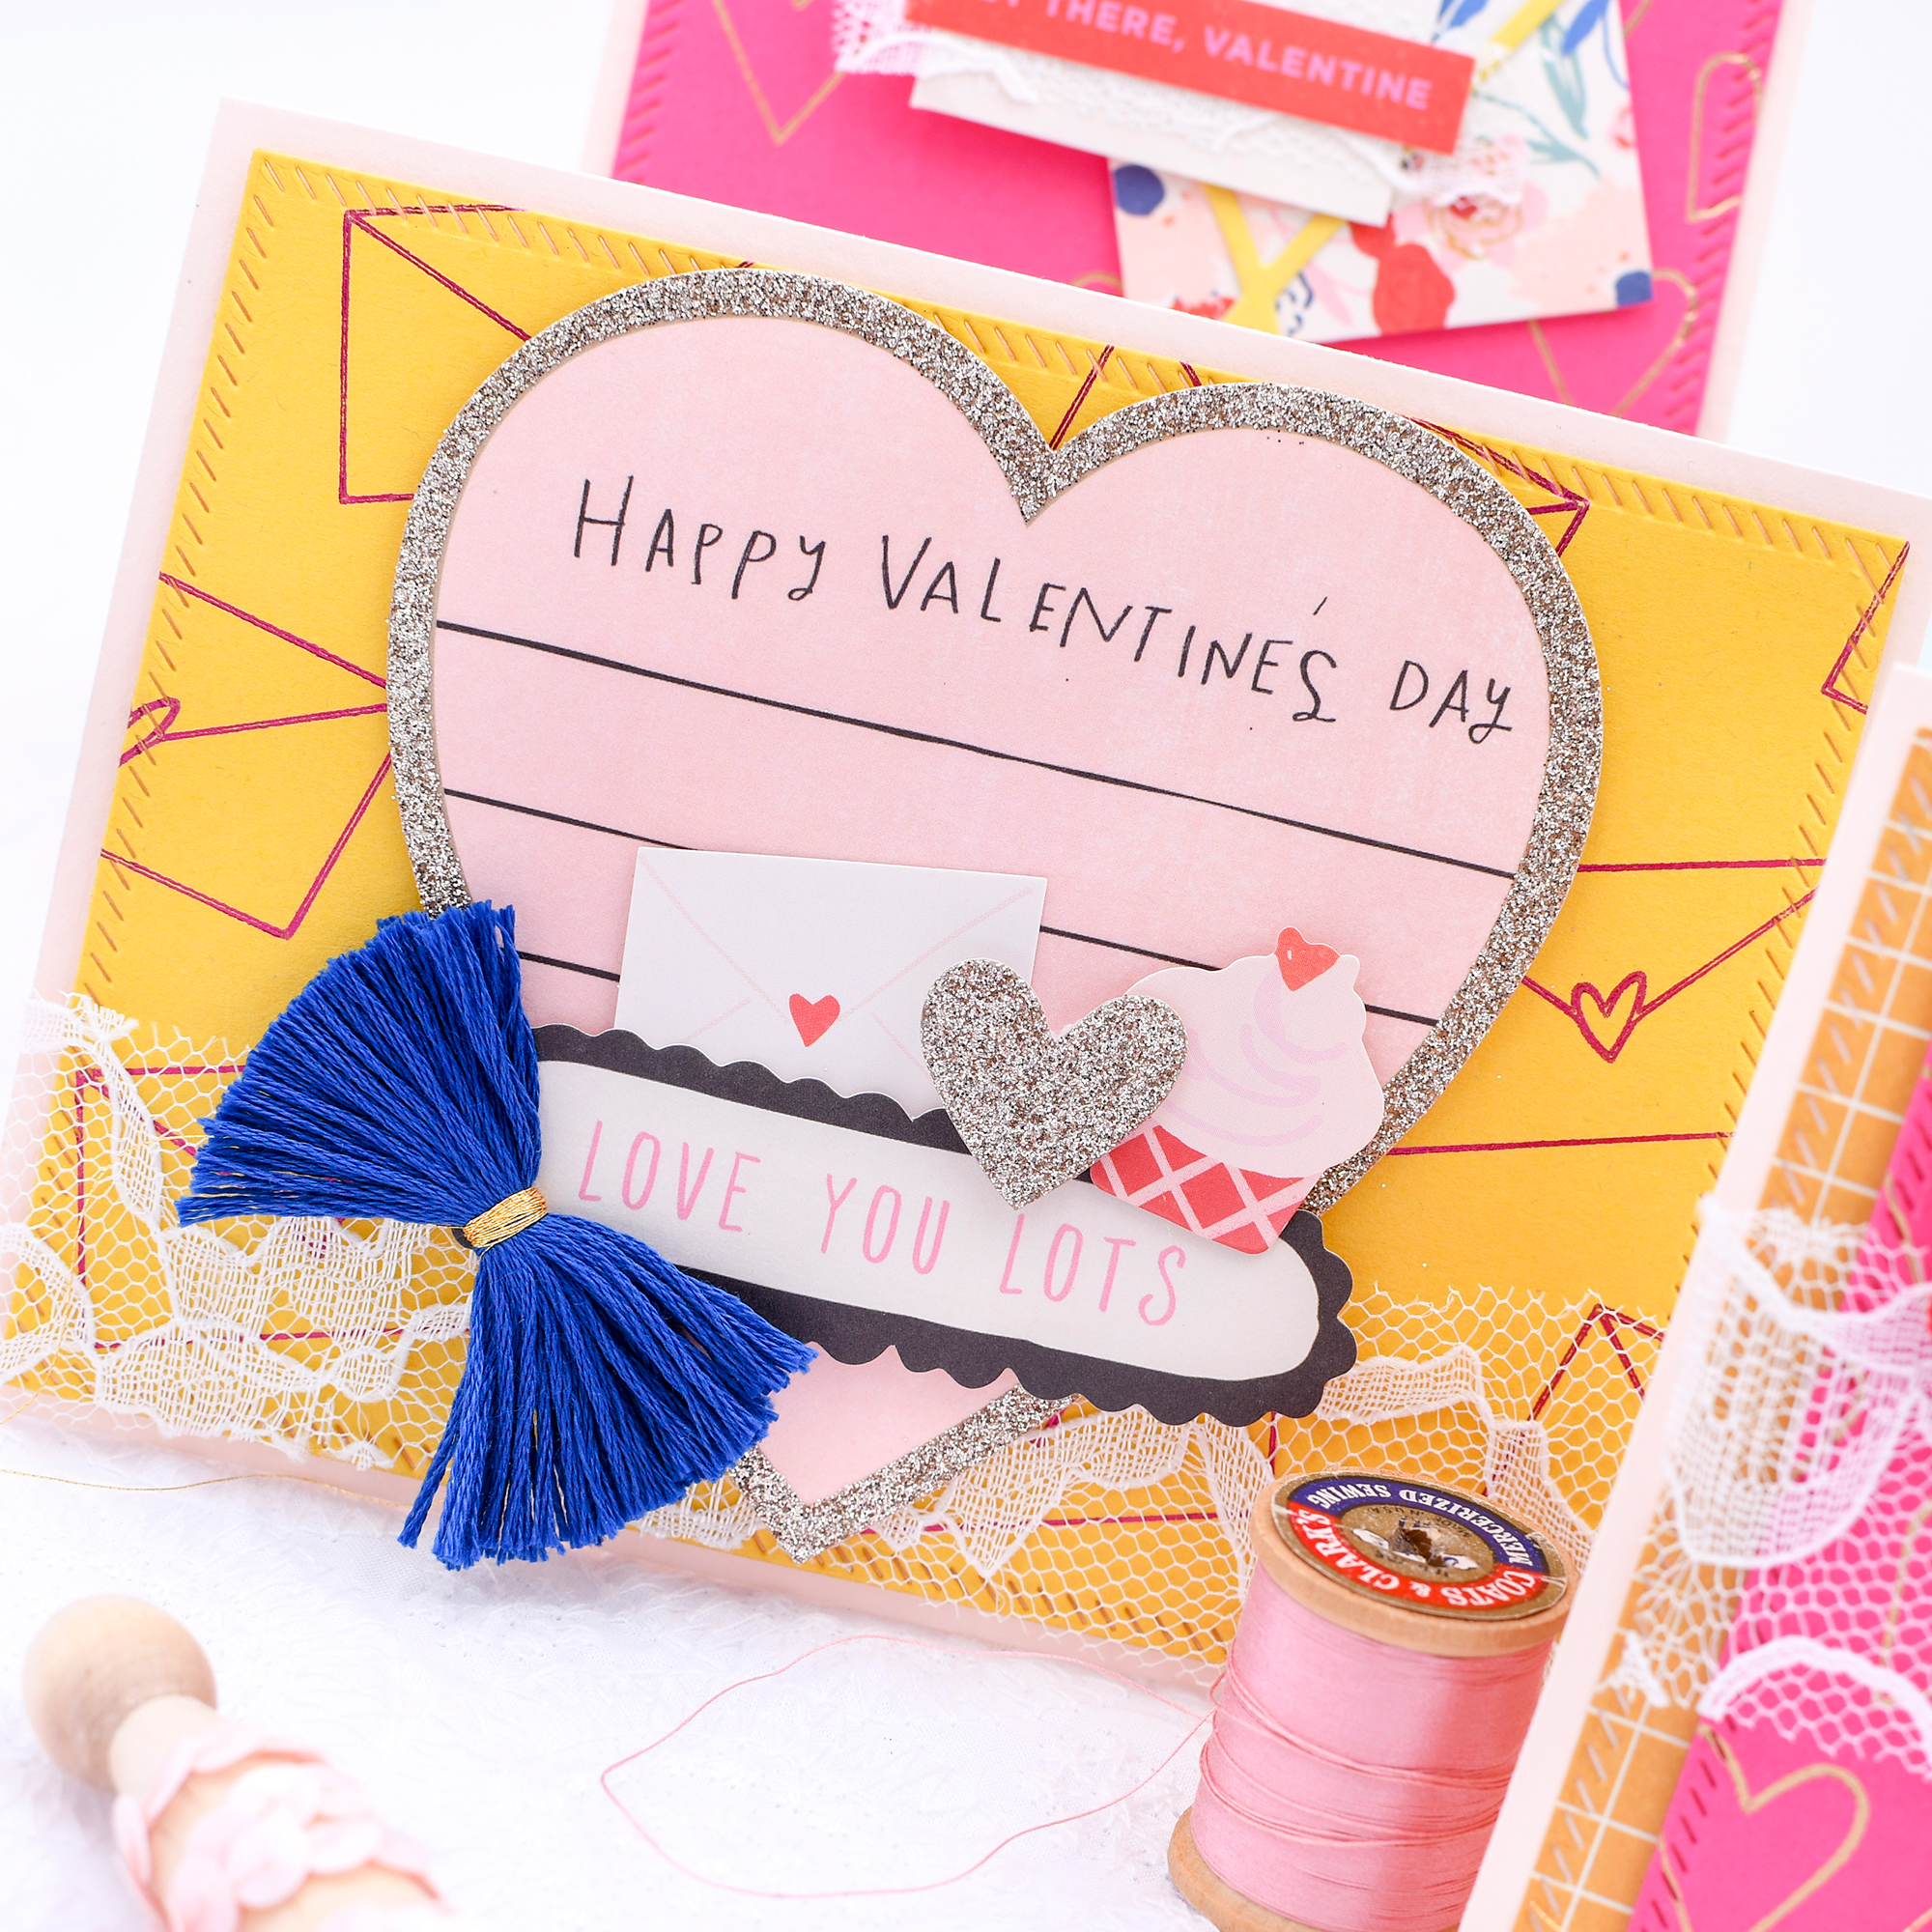 Valentine's Day Cards with the Foil Quill by Rebecca Luminarias for We R Memory Keepers